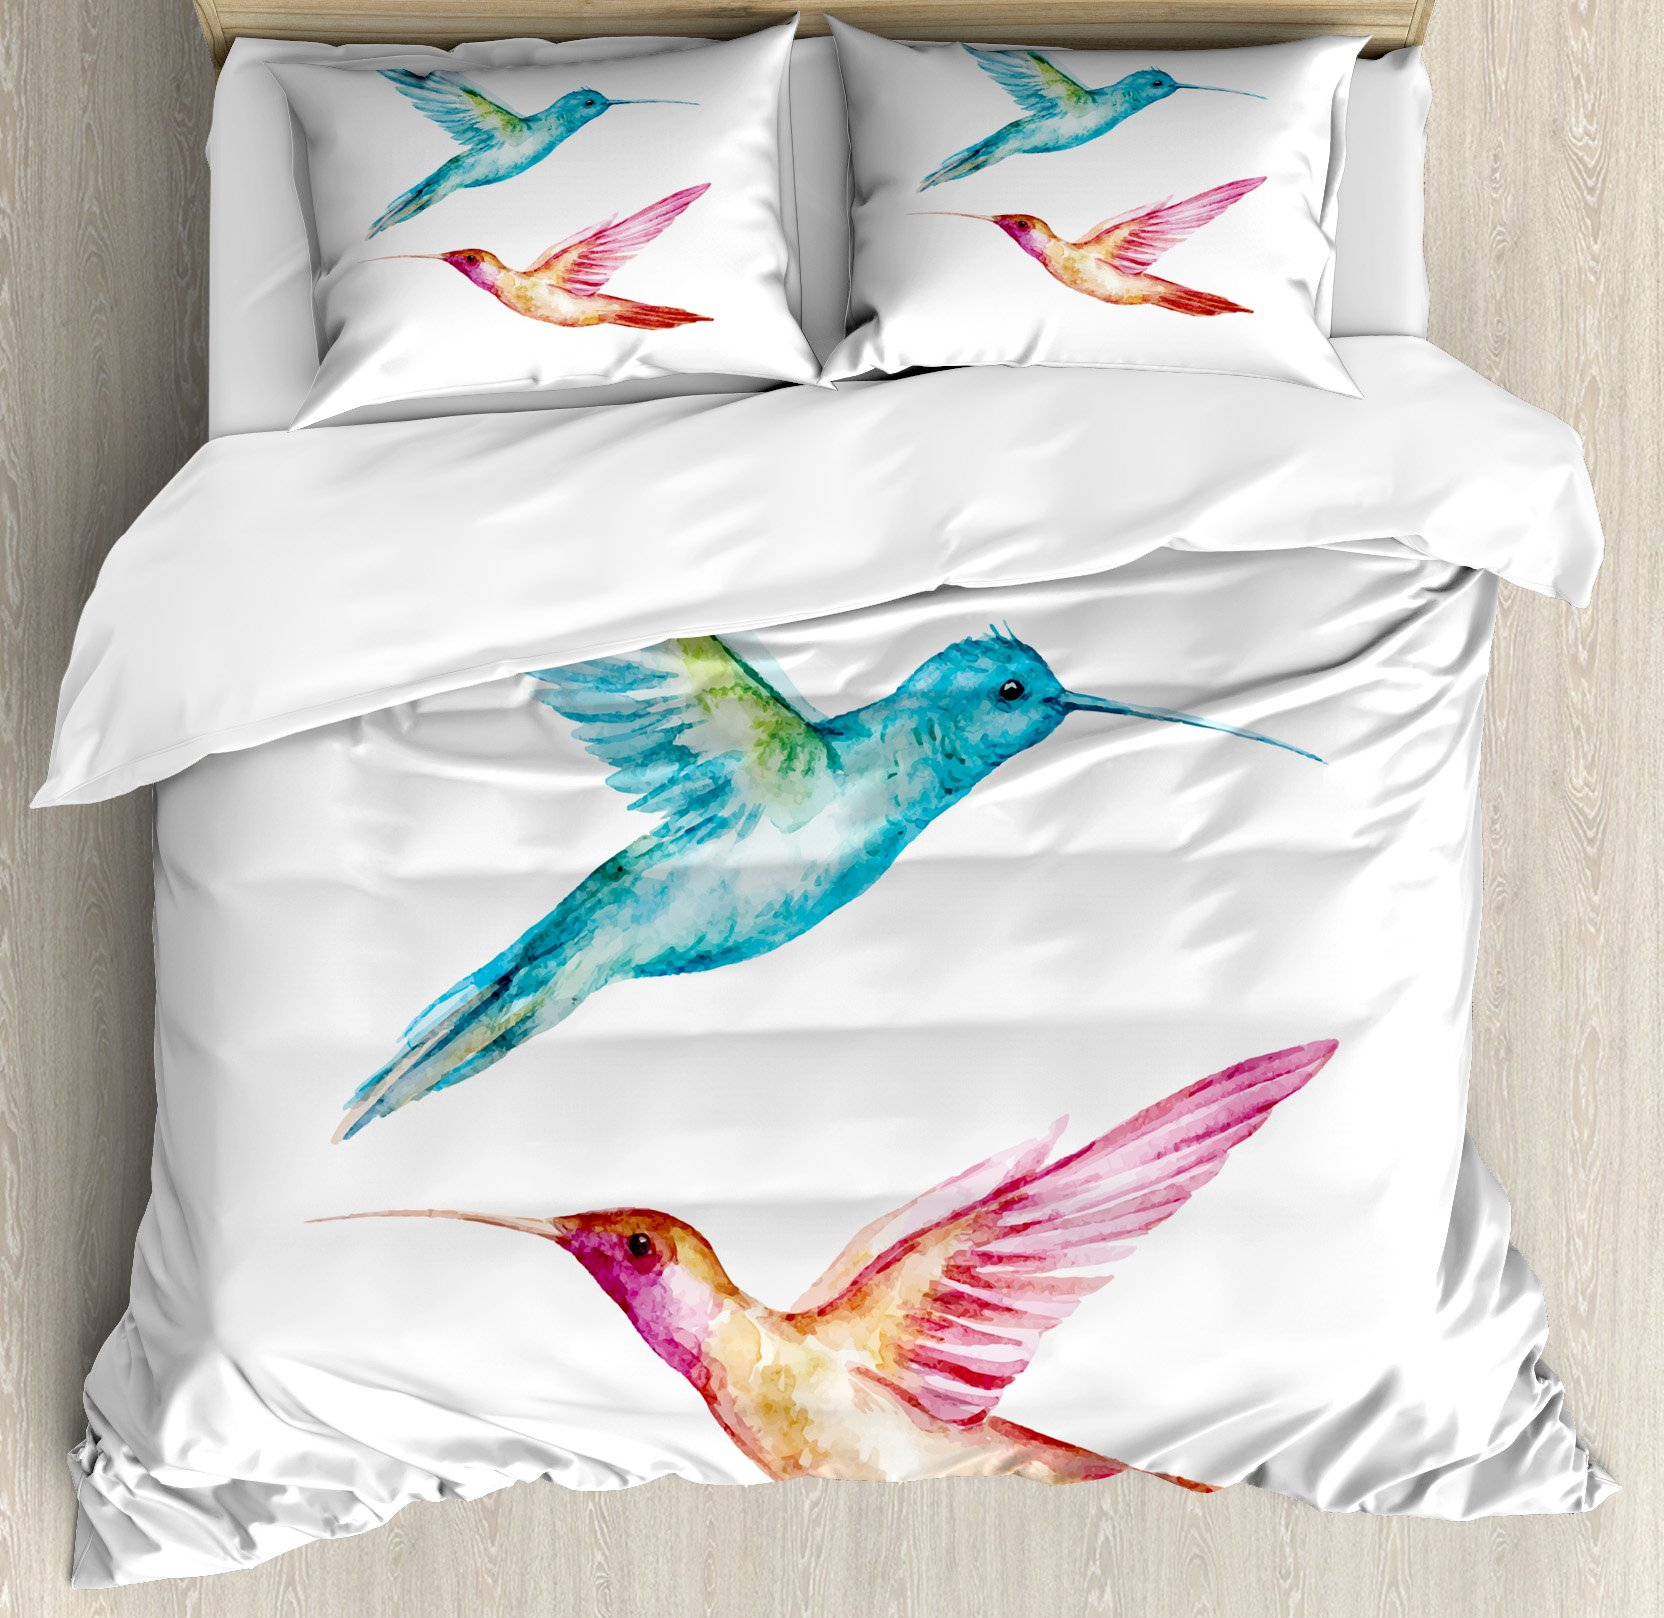 Watercolor Queen Size Duvet Cover Set by Ambesonne, Colorful Aquerelle Hummingbirds with Brush Marks Effect Avian Animal Design, Decorative 3 Piece Bedding Set with 2 Pillow Shams, Multicolor